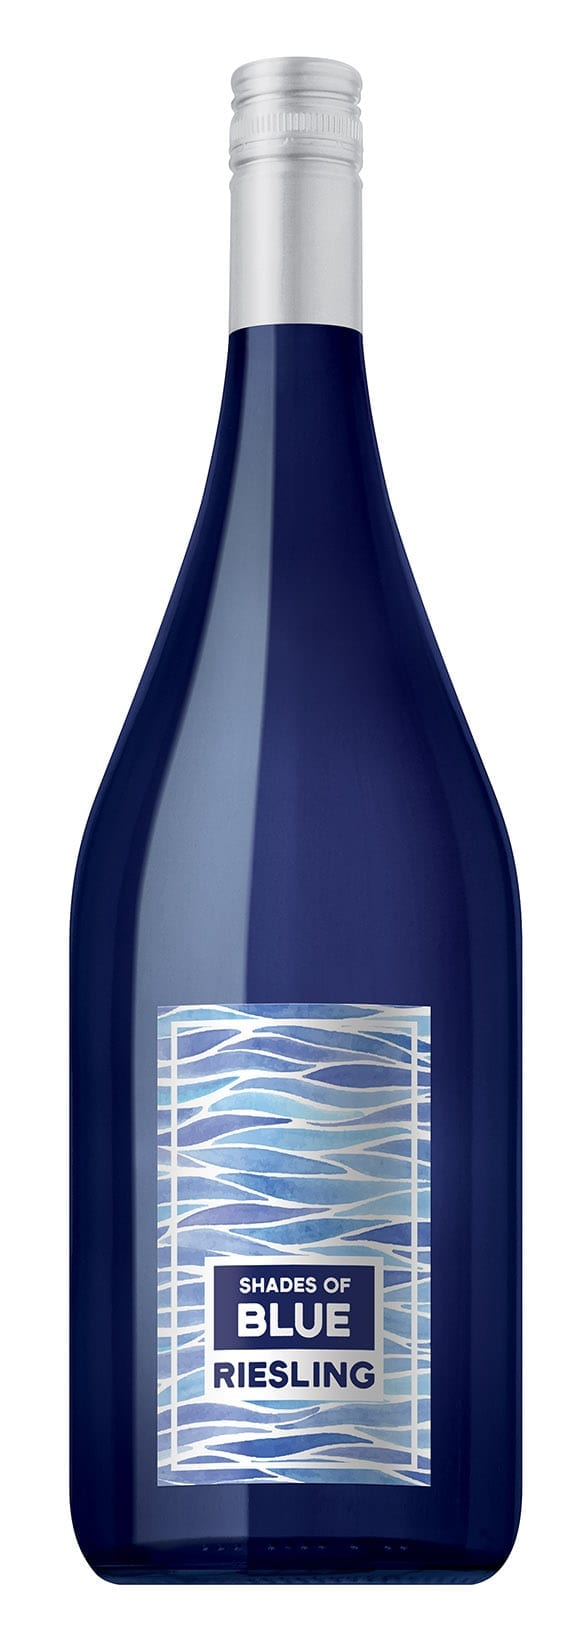 Shades of Blue, wine bottle, riesling